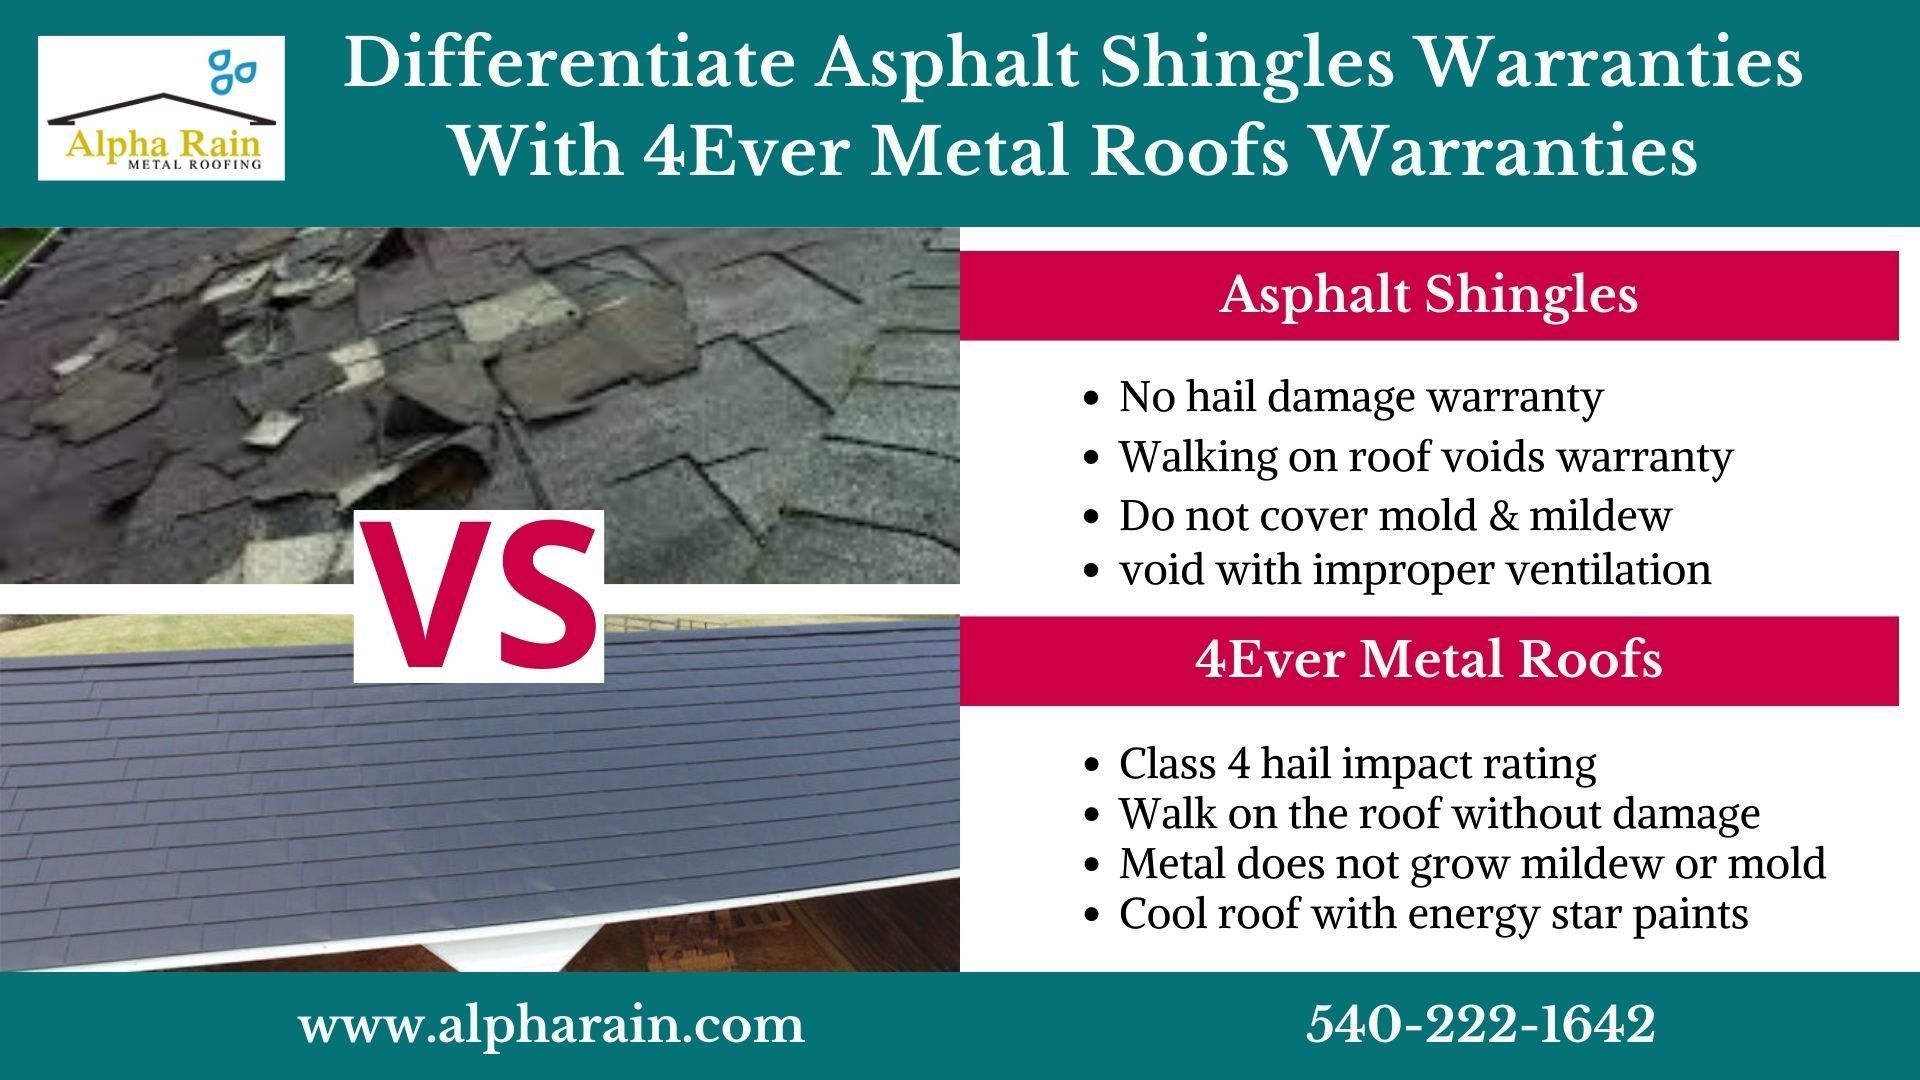 Warranties Offered On Metal Roofs Vs Asphalt Shingles In 2020 Metal Roofing Systems Shingling Metal Shingles